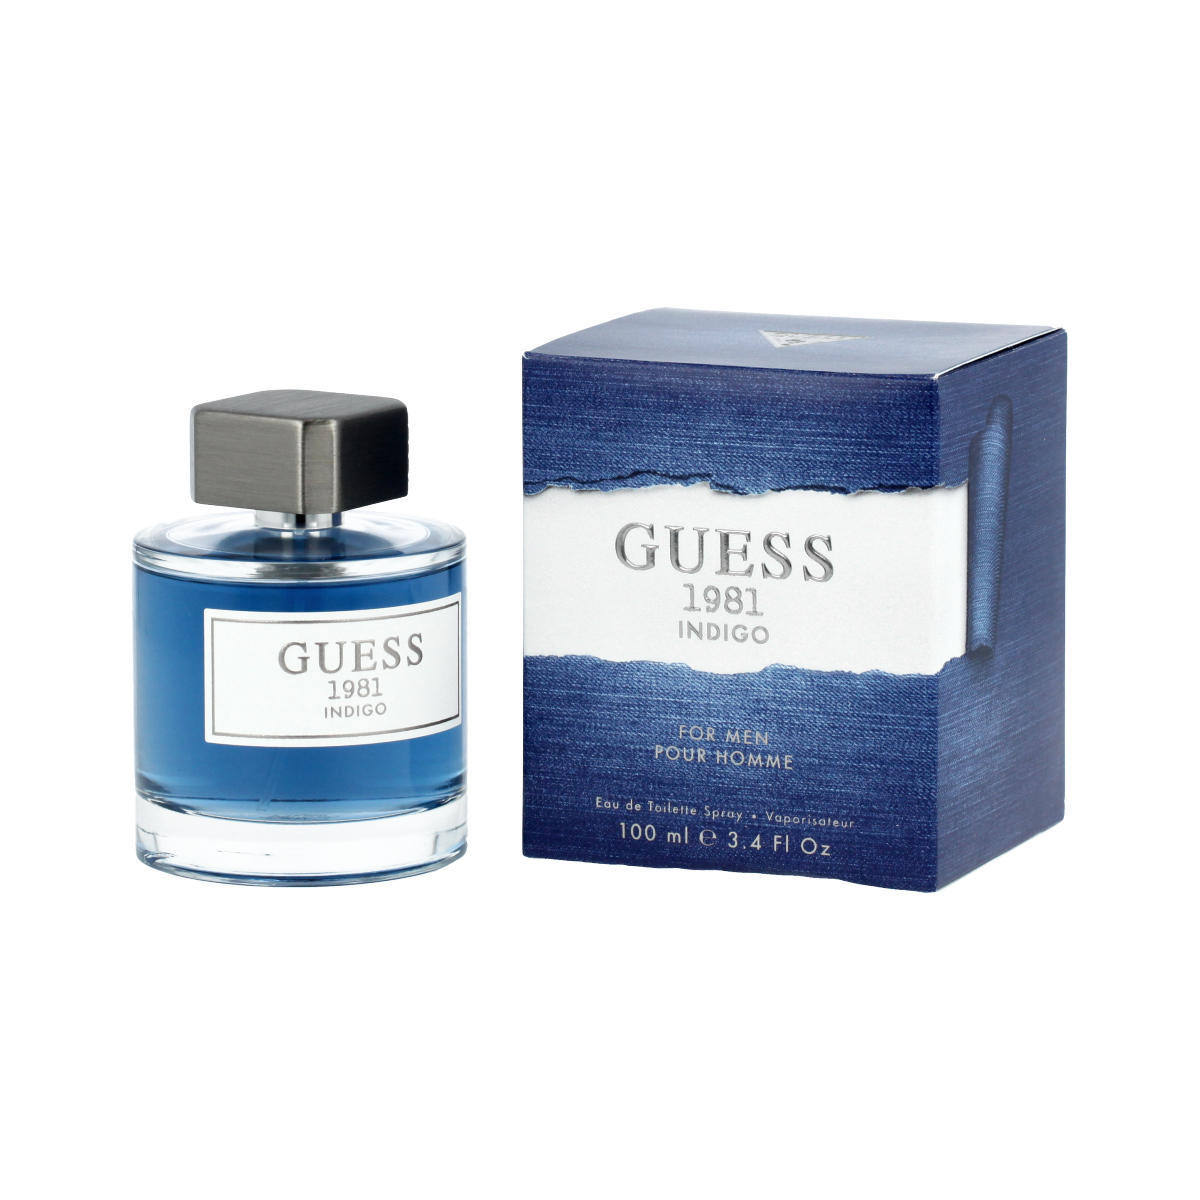 Guess Guess 1981 Indigo for Men Eau De Toilette 100 ml (man) 95735